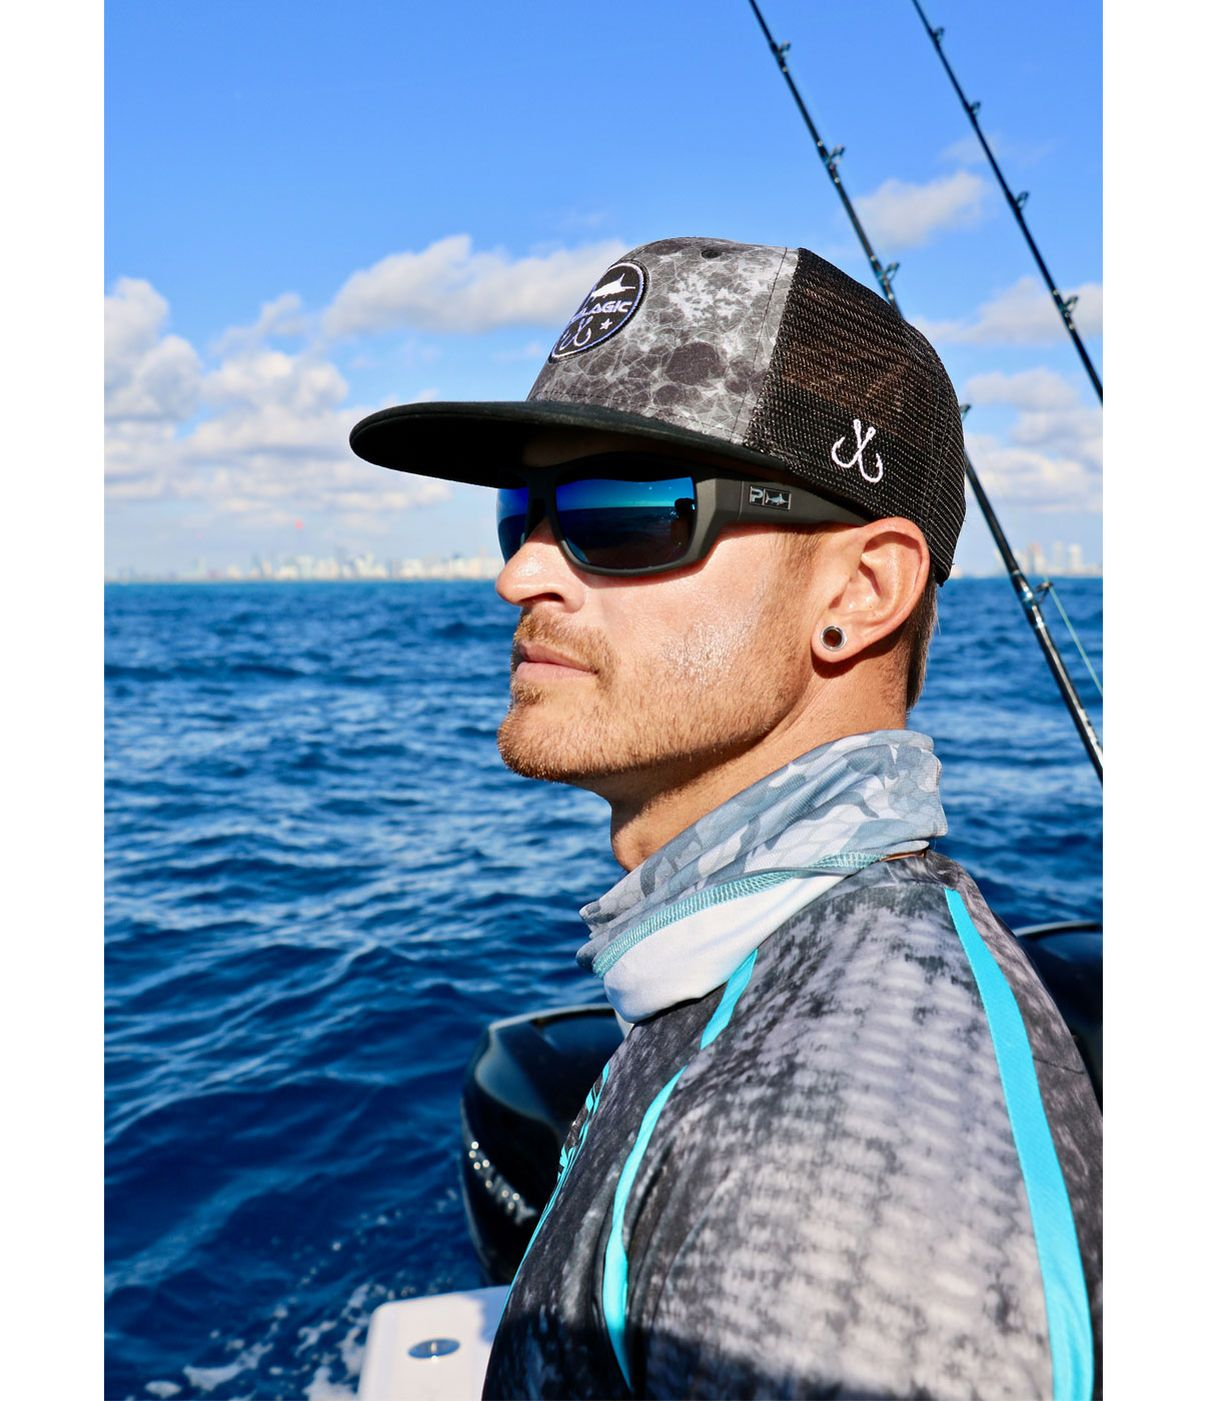 068879bcf0 Pelagic Pursuit Sunglasses - Fishing s Finest